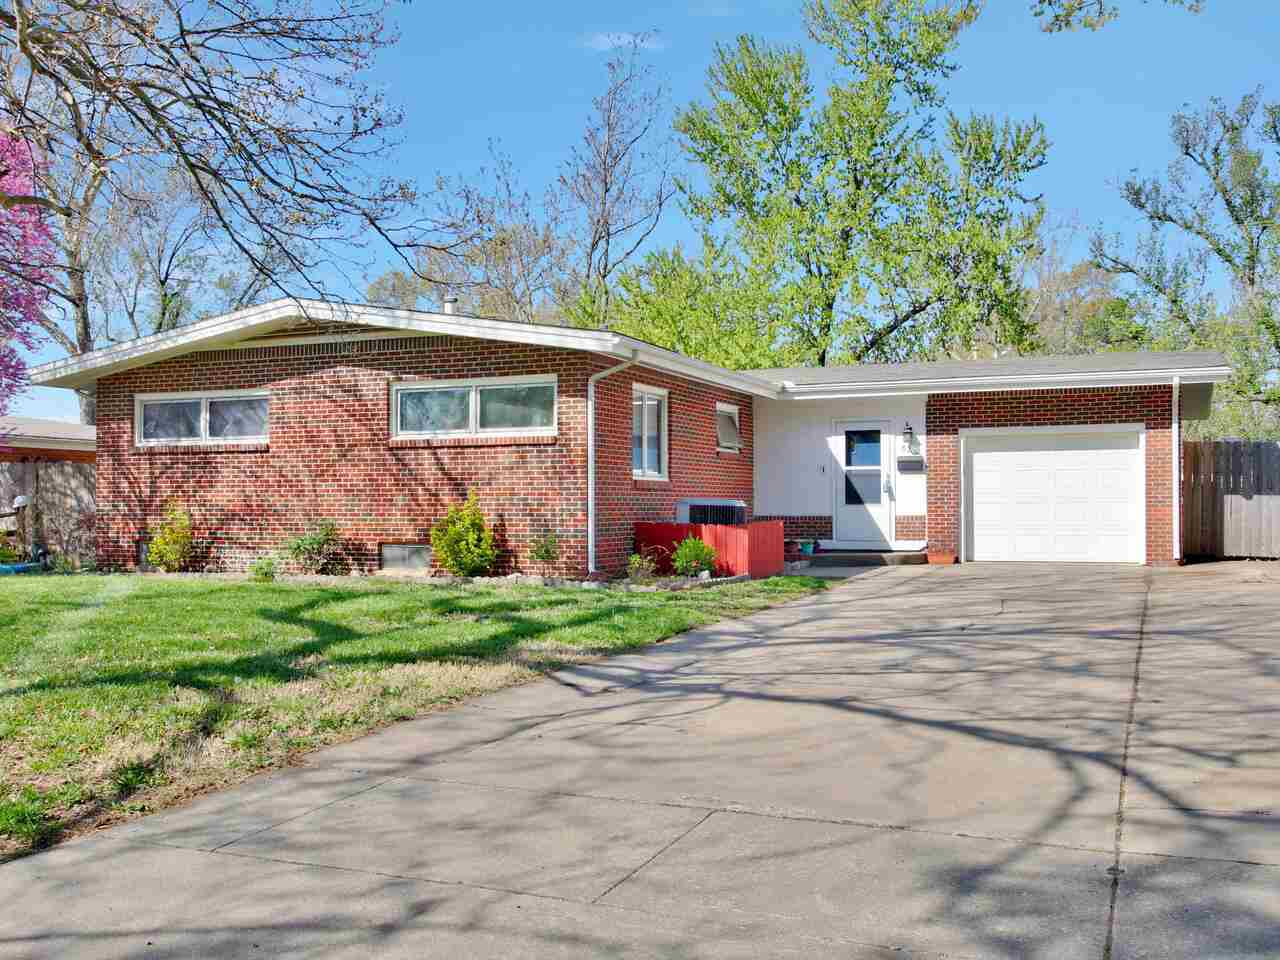 Mid-Century modern  full brick 3 bedroom 2 bath home with basement in the sought after Westlink Neig